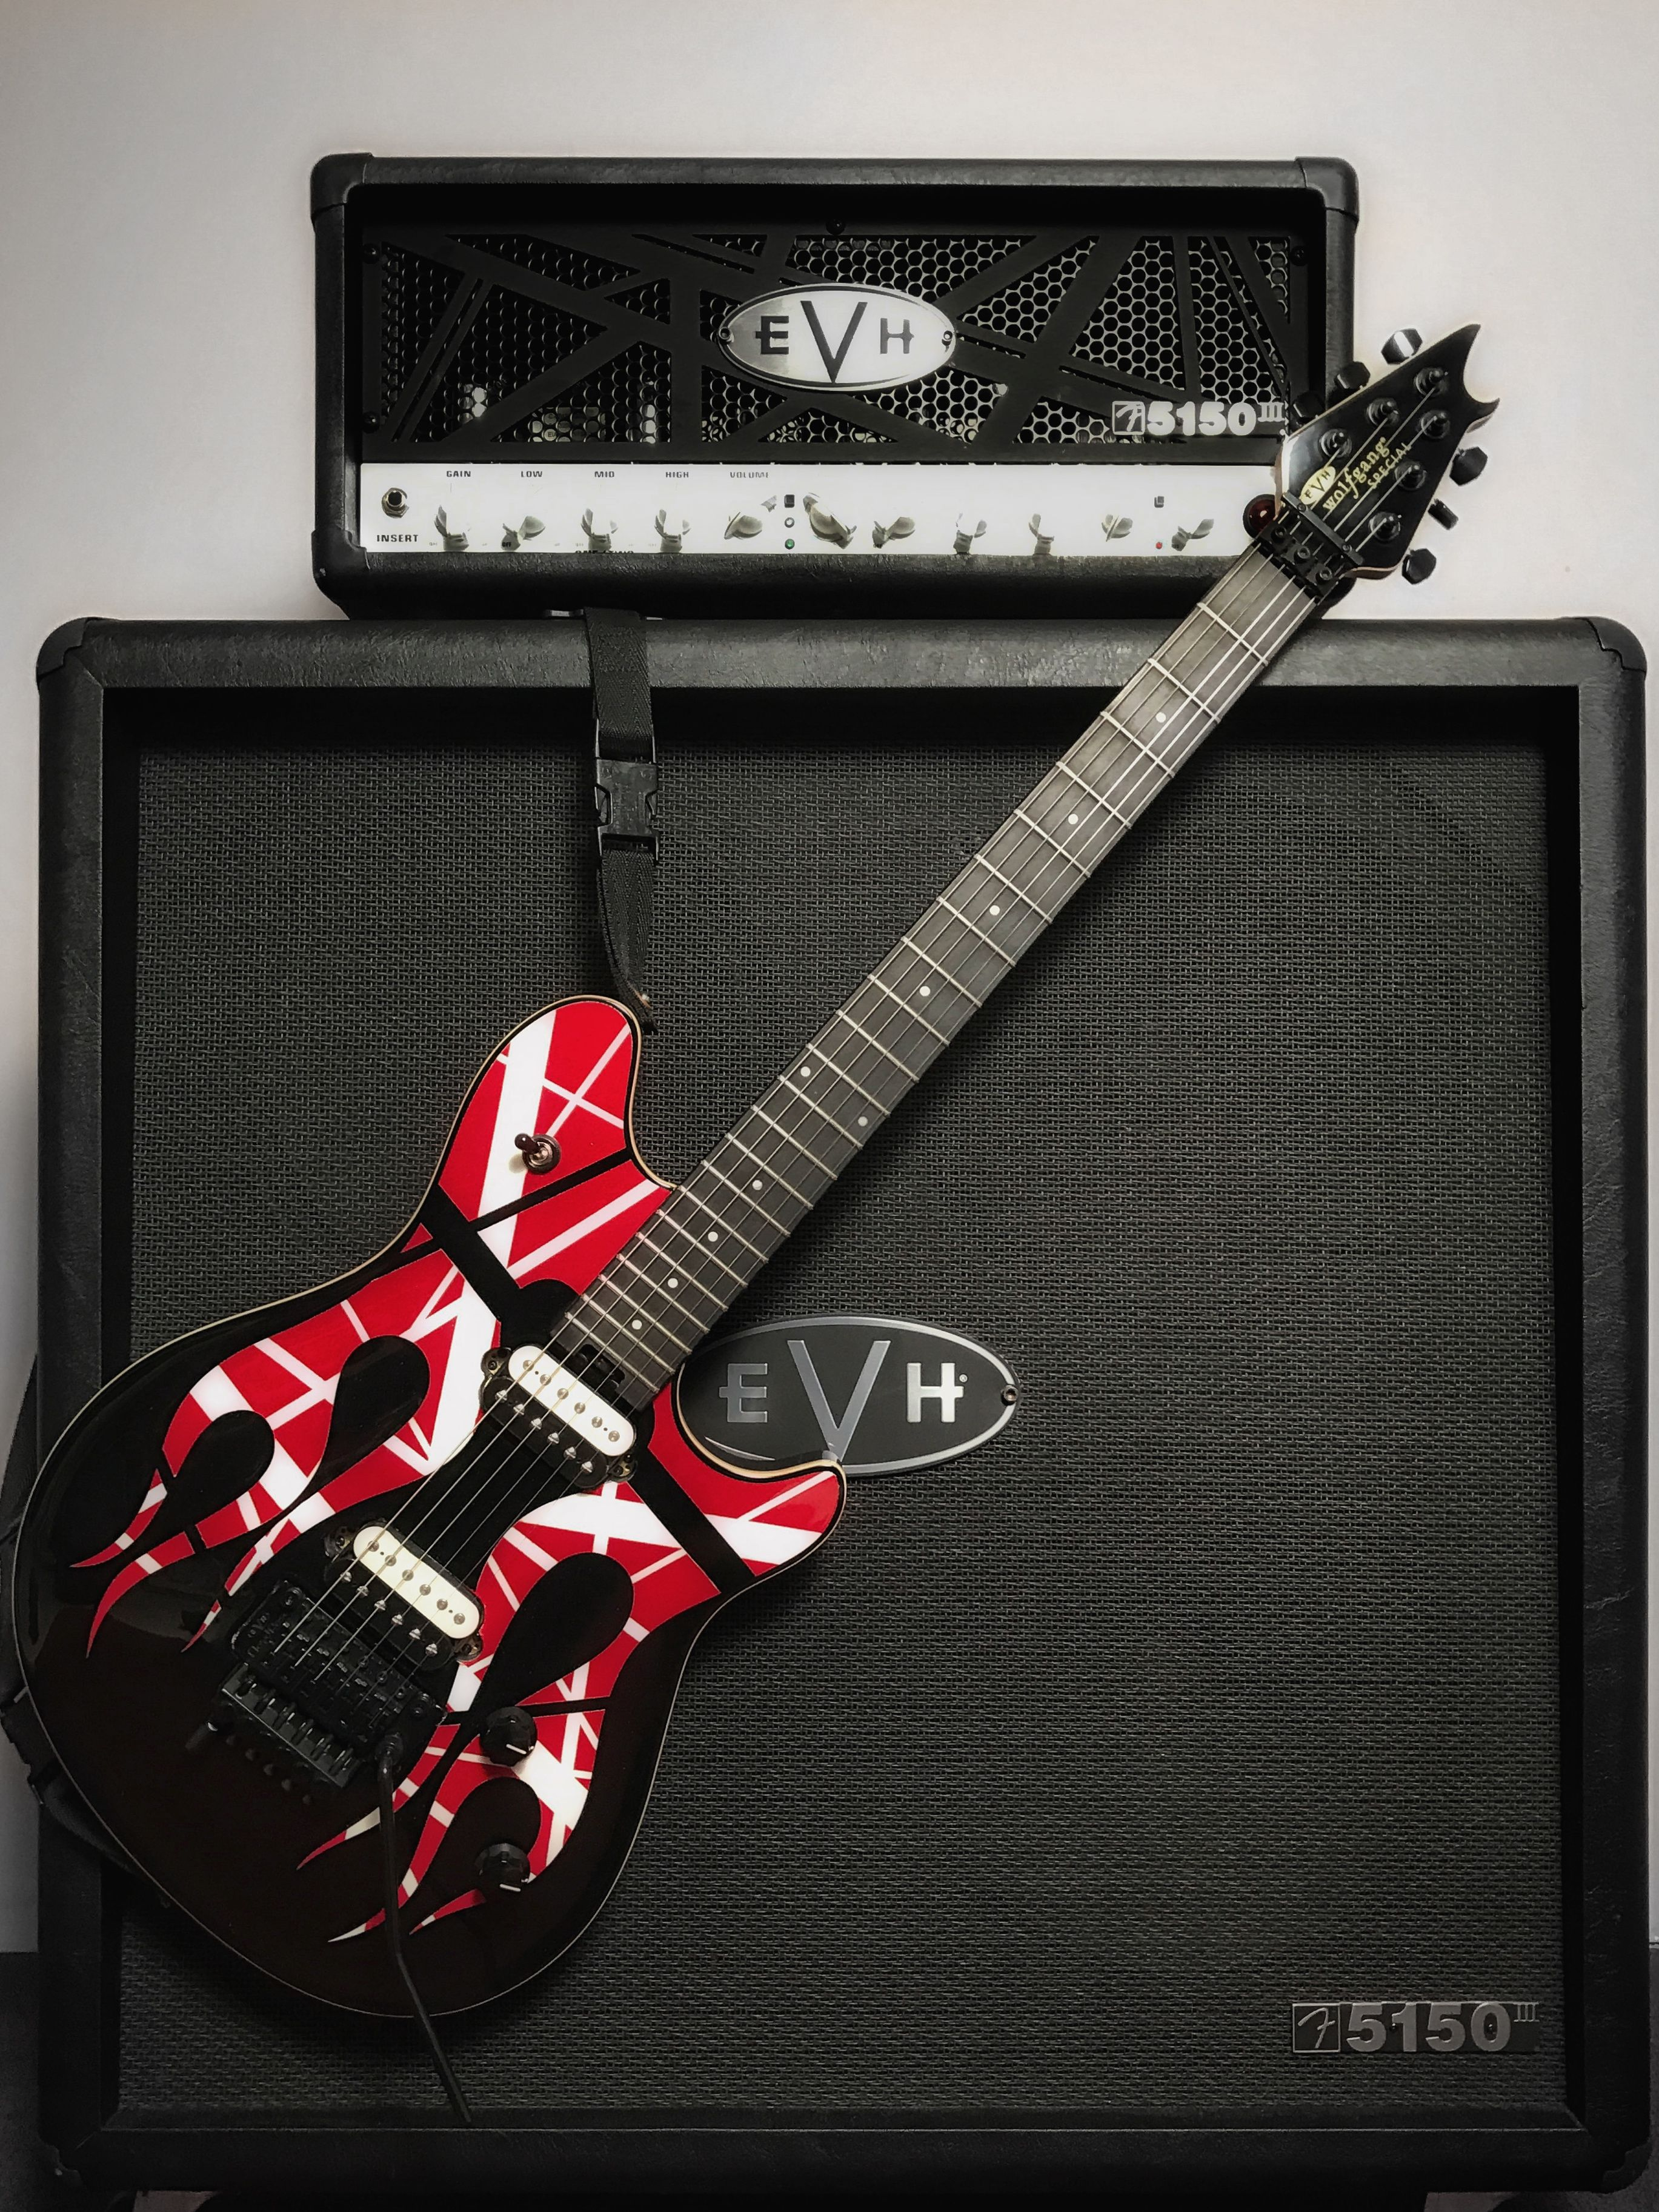 My New Customized Evh Wolfgang Special With Evh 5150iii And Evh Stealth 4x12 Cabinet With Images Custom Electric Guitars Cool Guitar Guitar Design